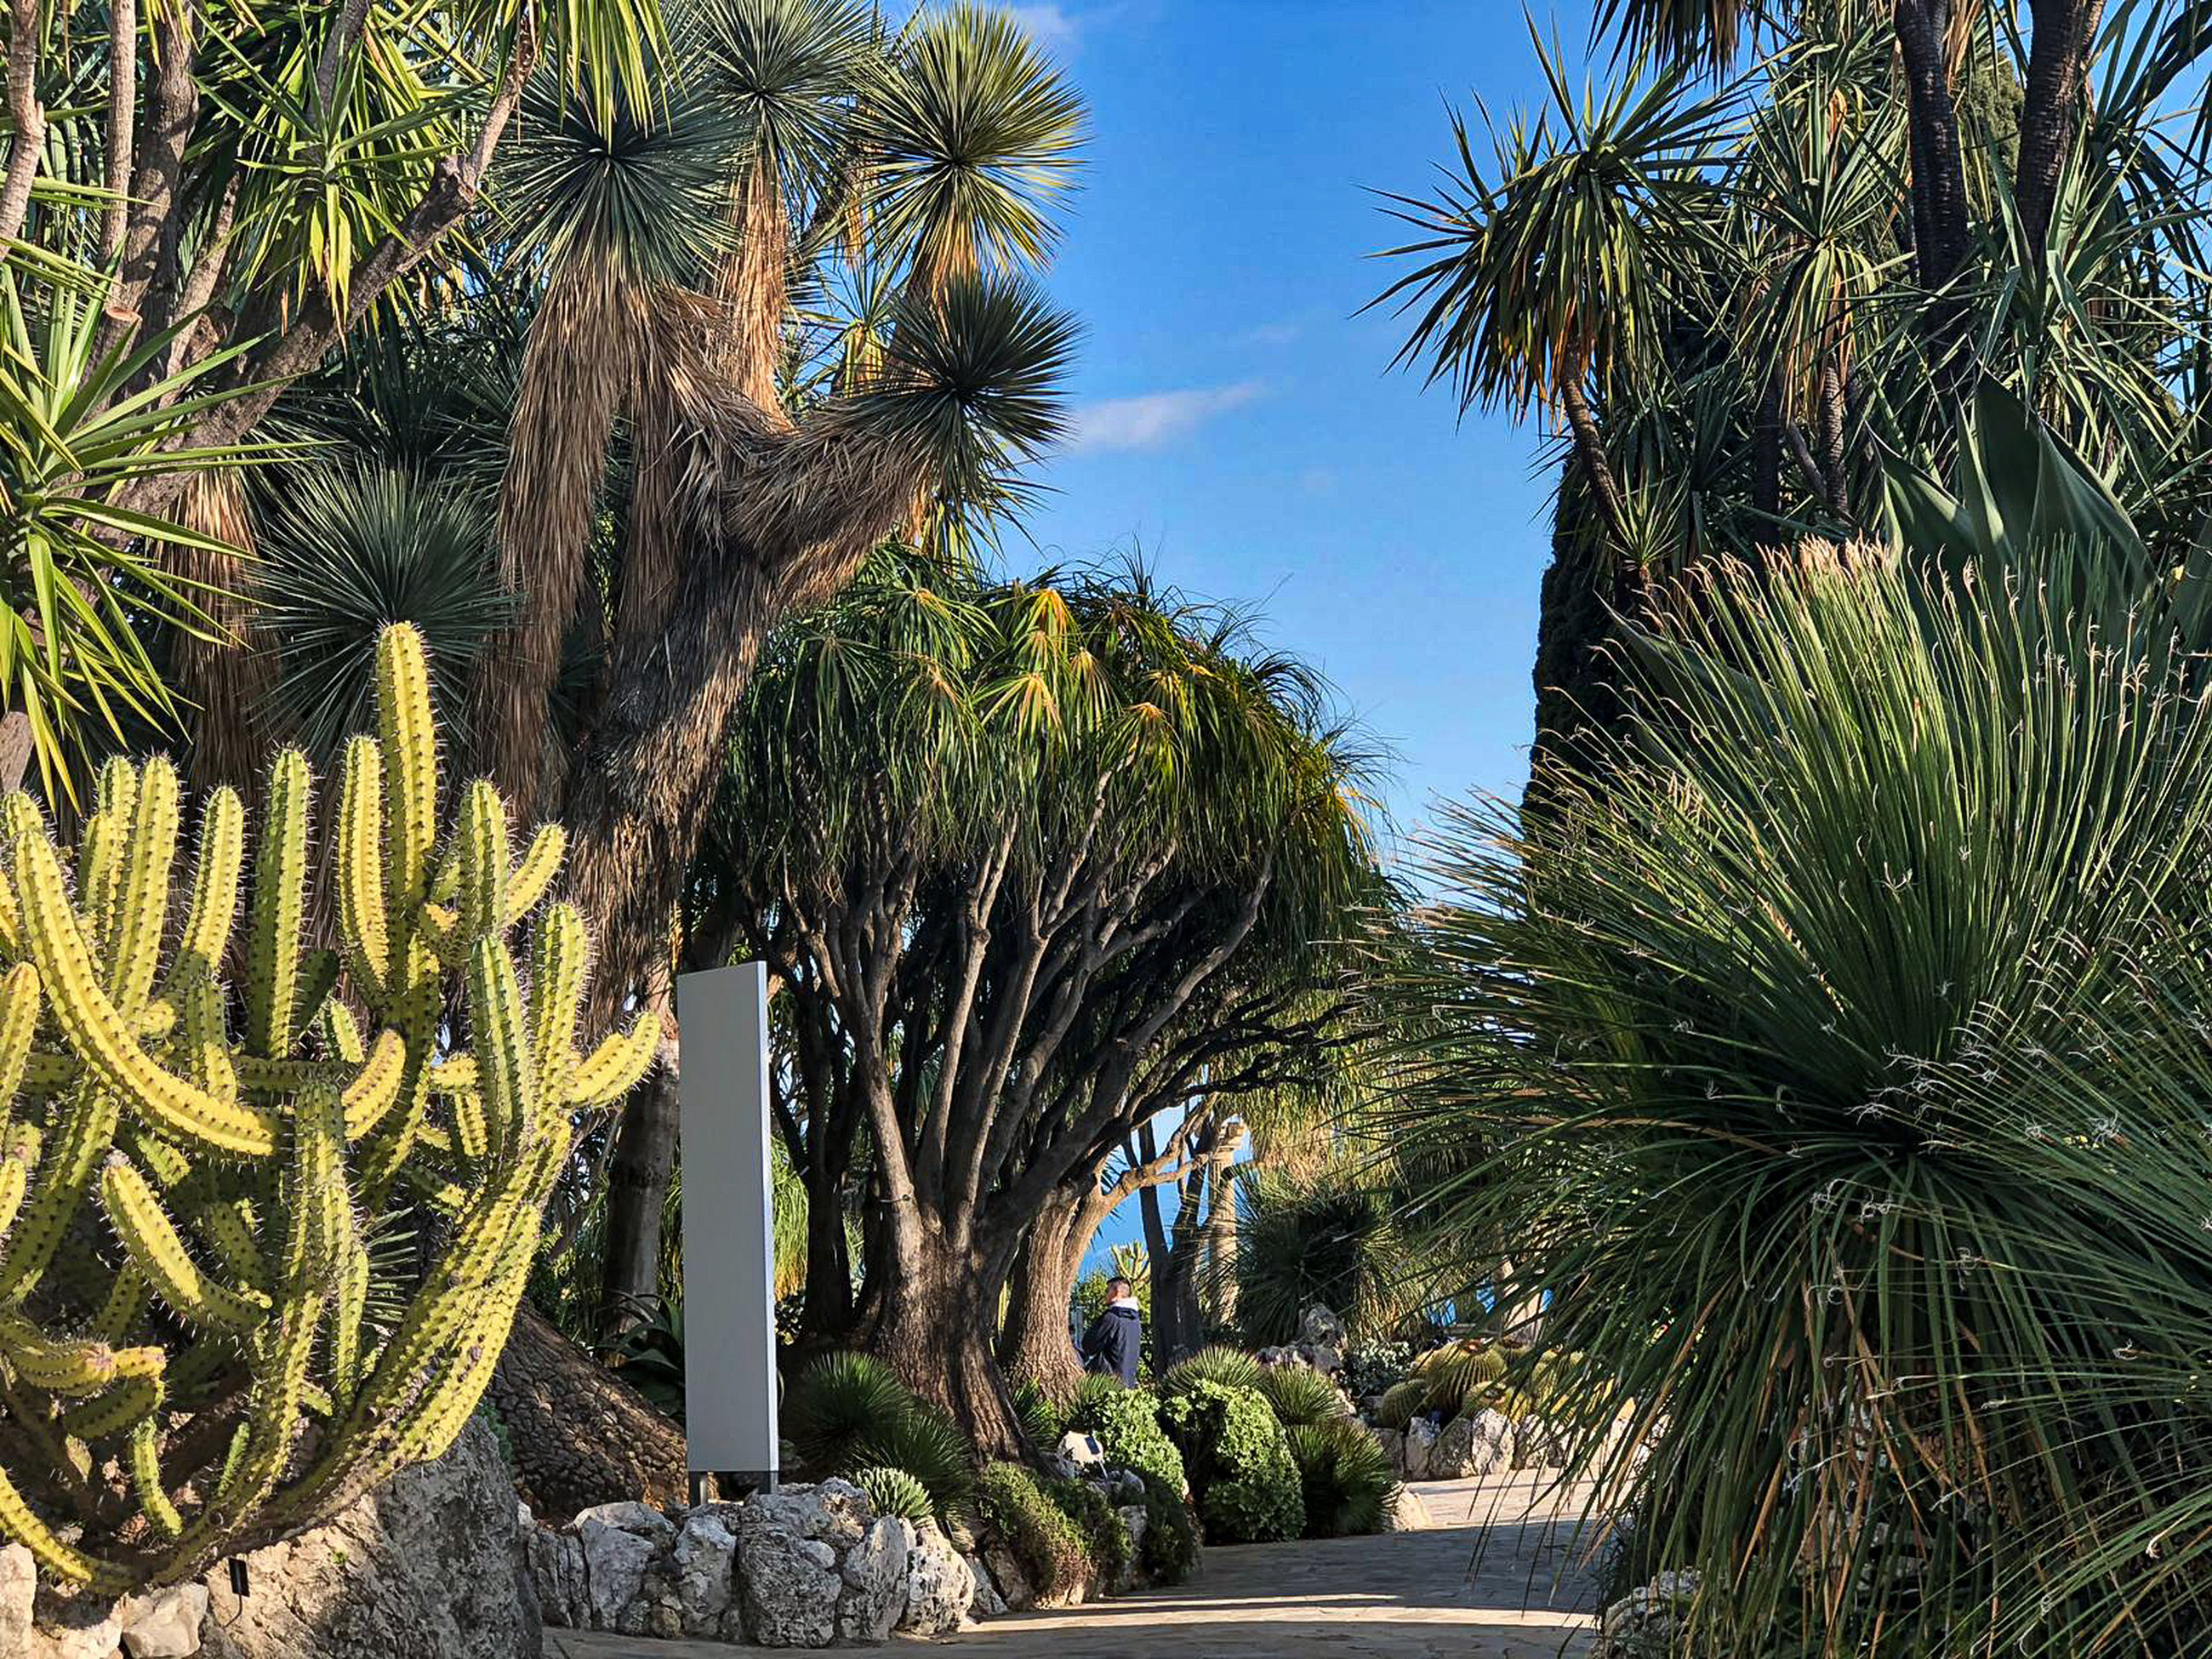 plant, tree, palm tree, growth, tropical climate, nature, day, sky, succulent plant, cactus, green color, sunlight, no people, tranquility, beauty in nature, outdoors, park, footpath, park - man made space, tranquil scene, palm leaf